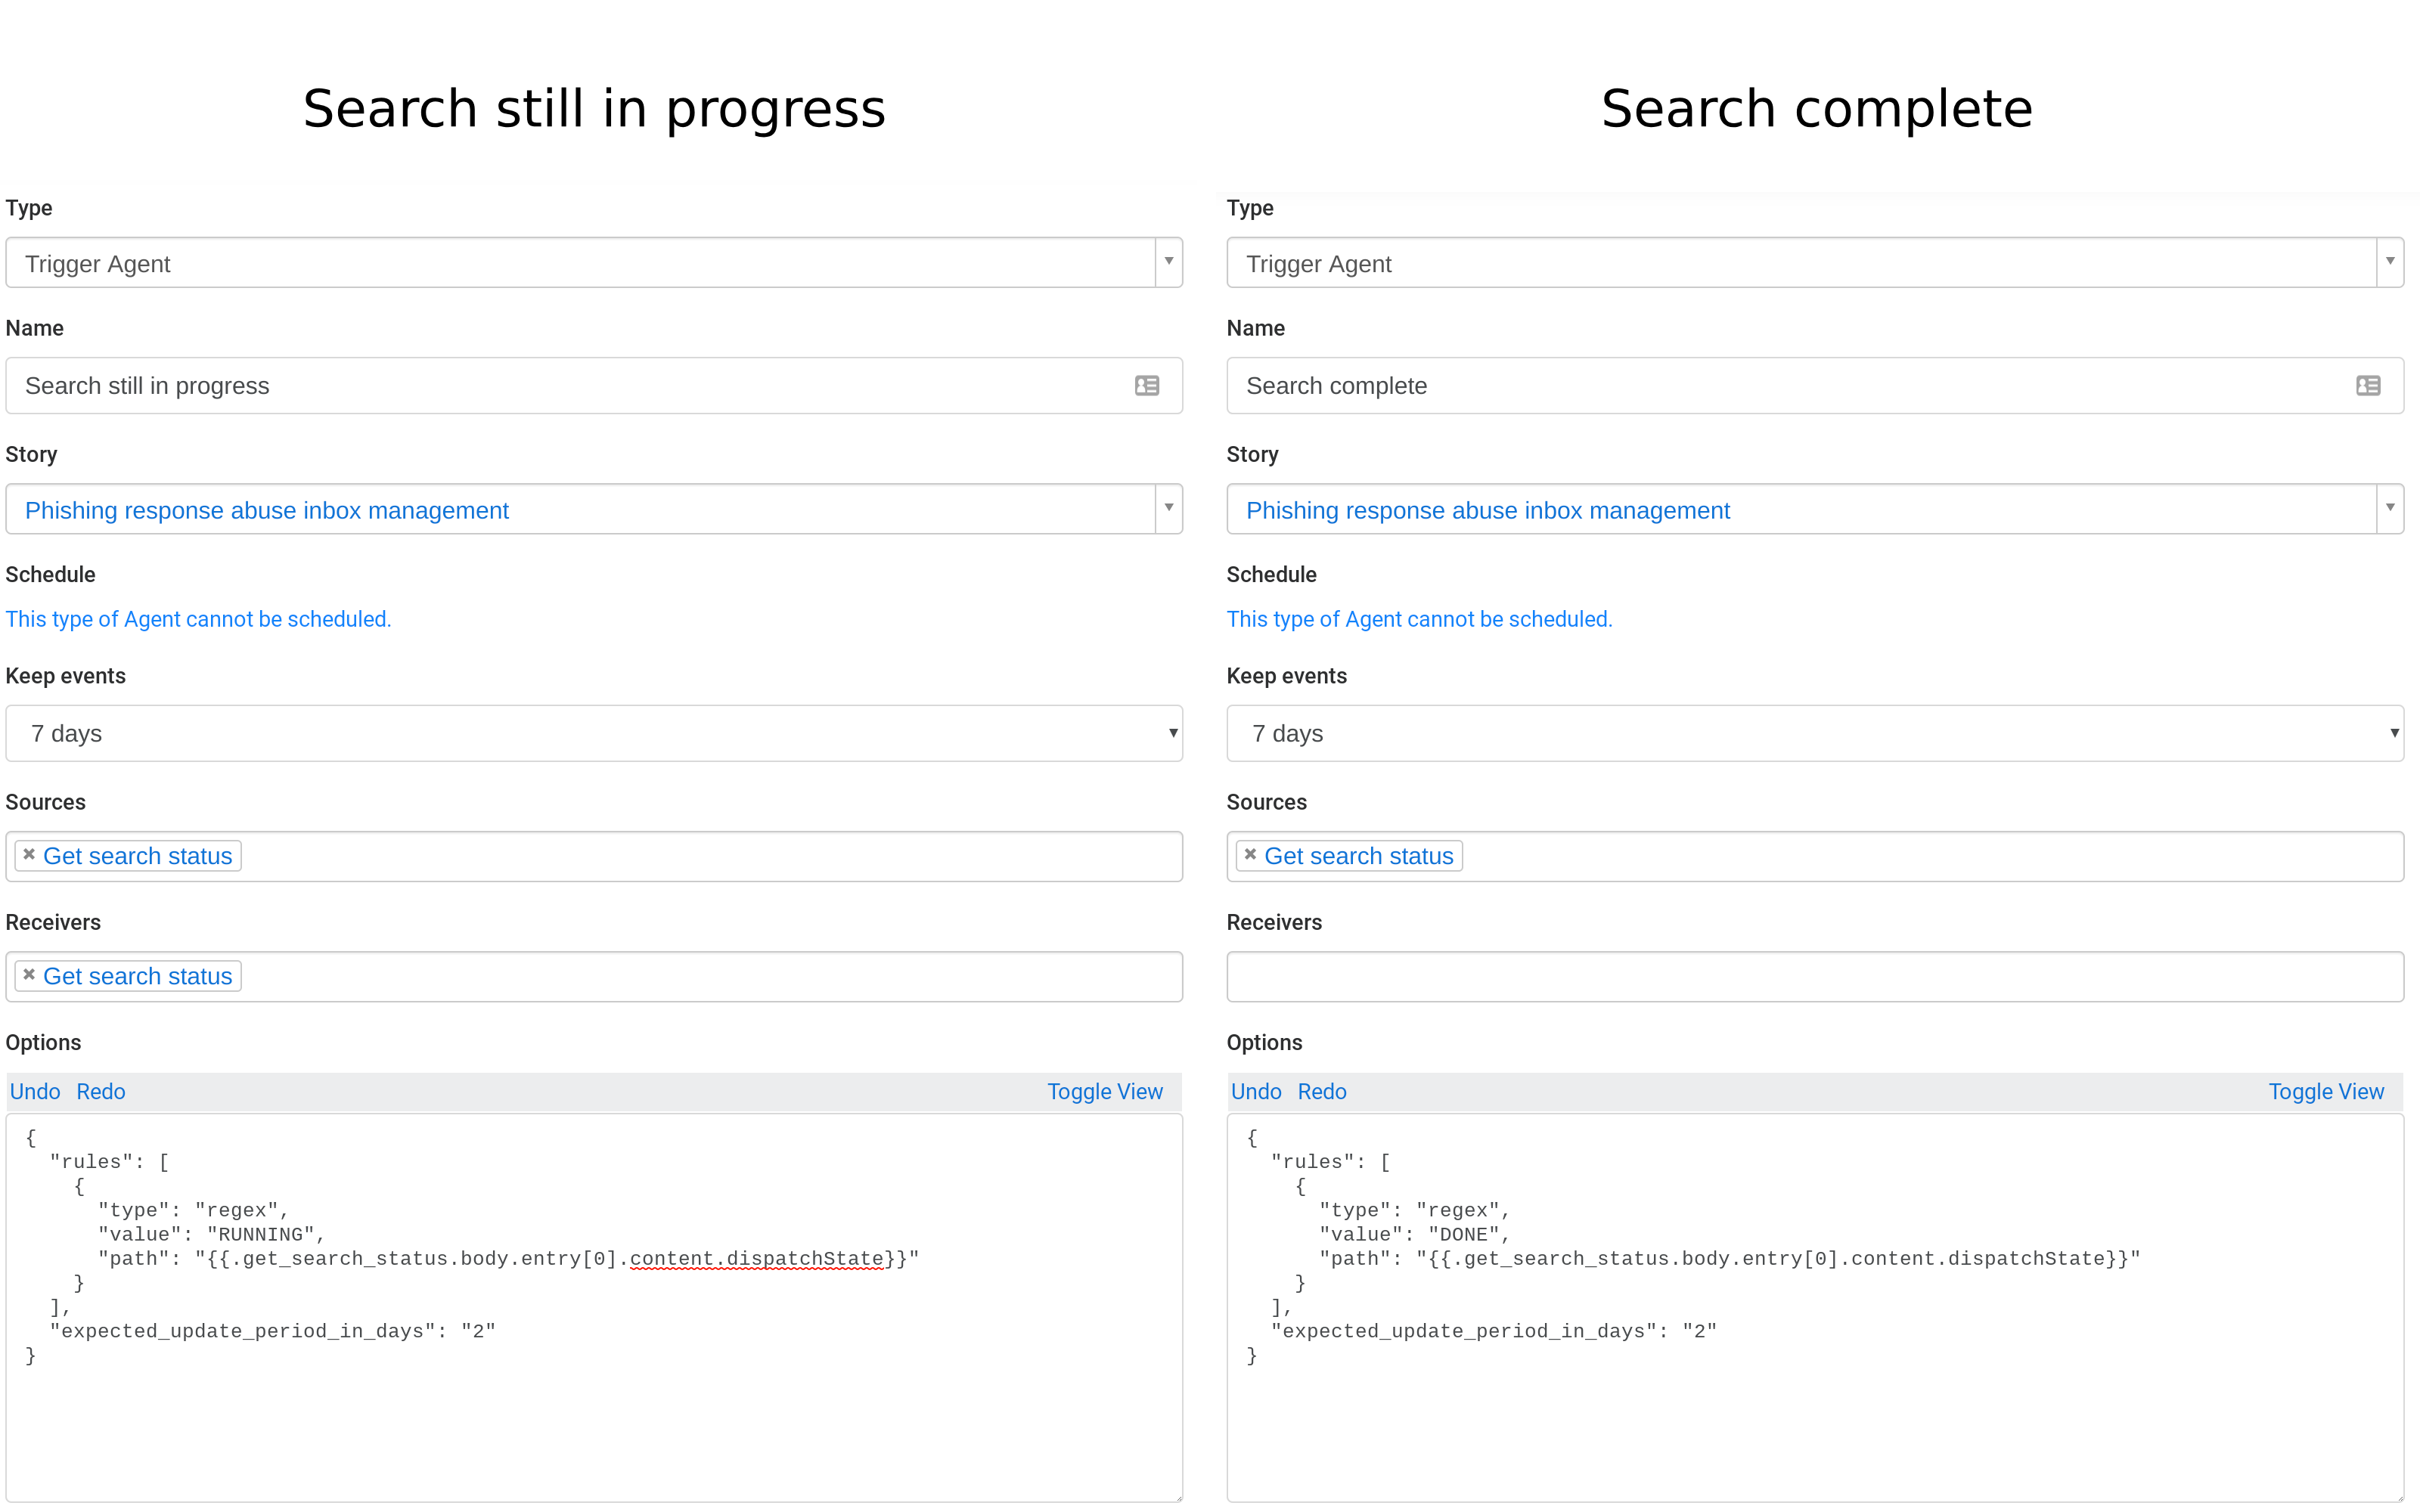 Configuration for search status trigger agents